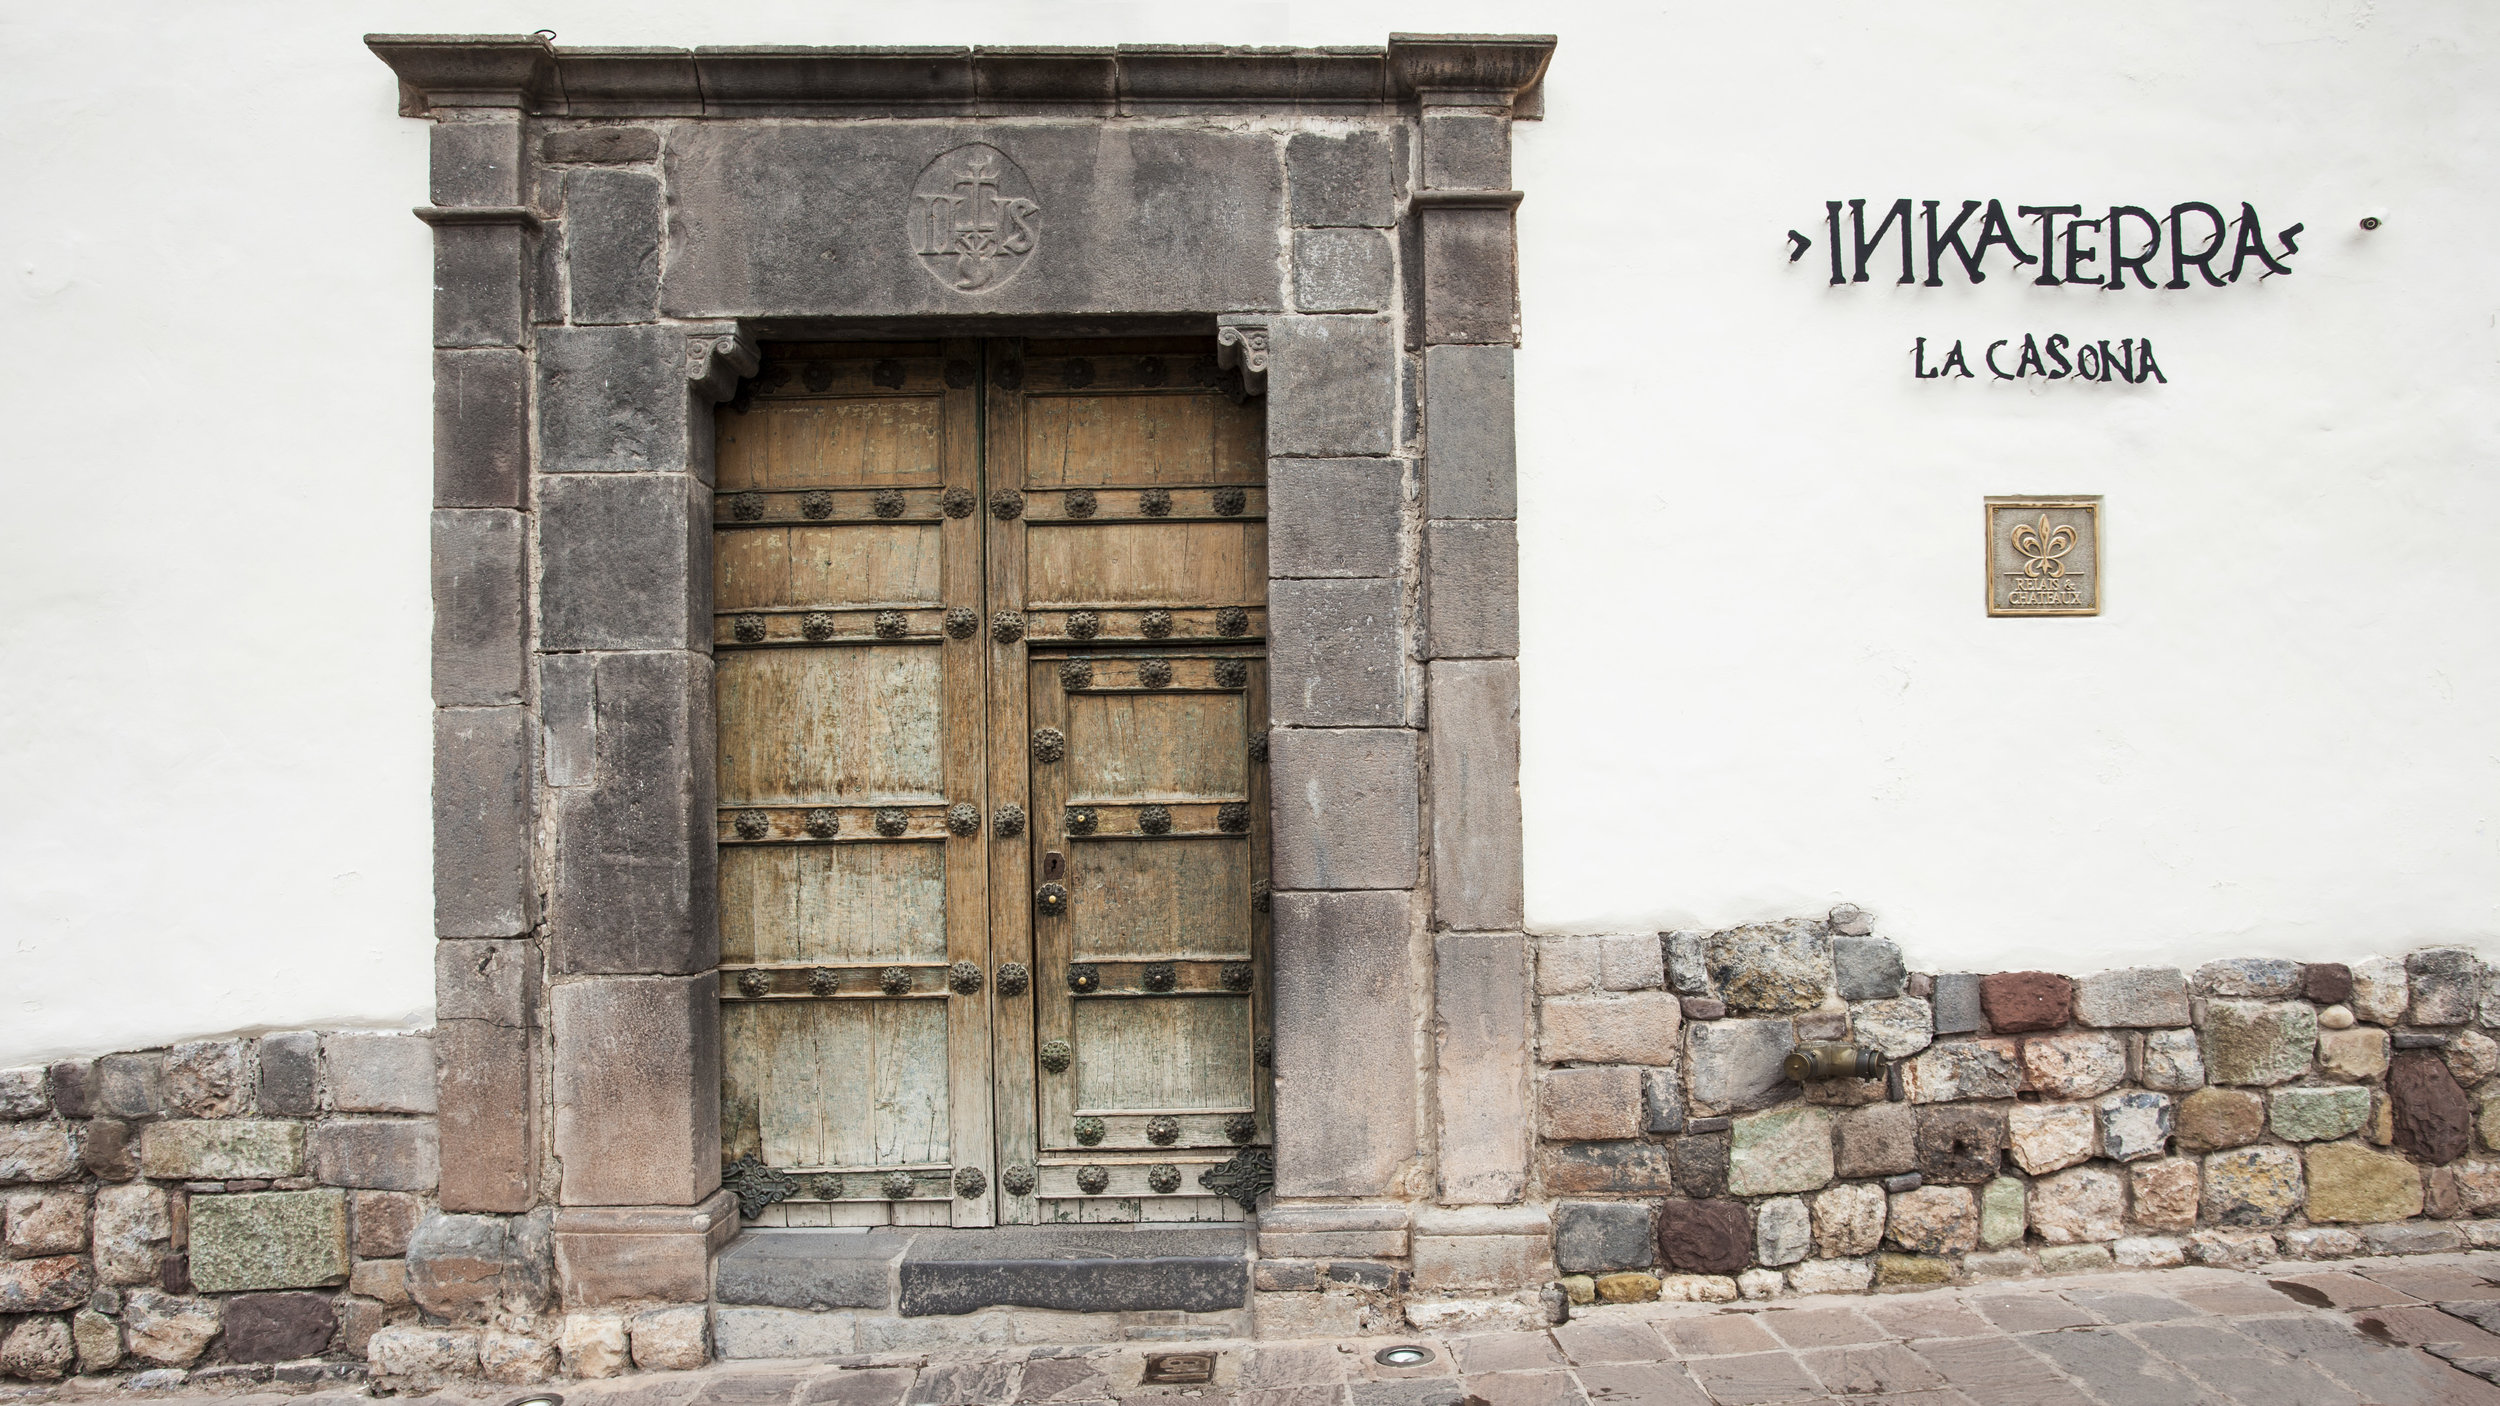 ...only those with one of the 11 rooms keys get a chance to experience the history behind these doors.